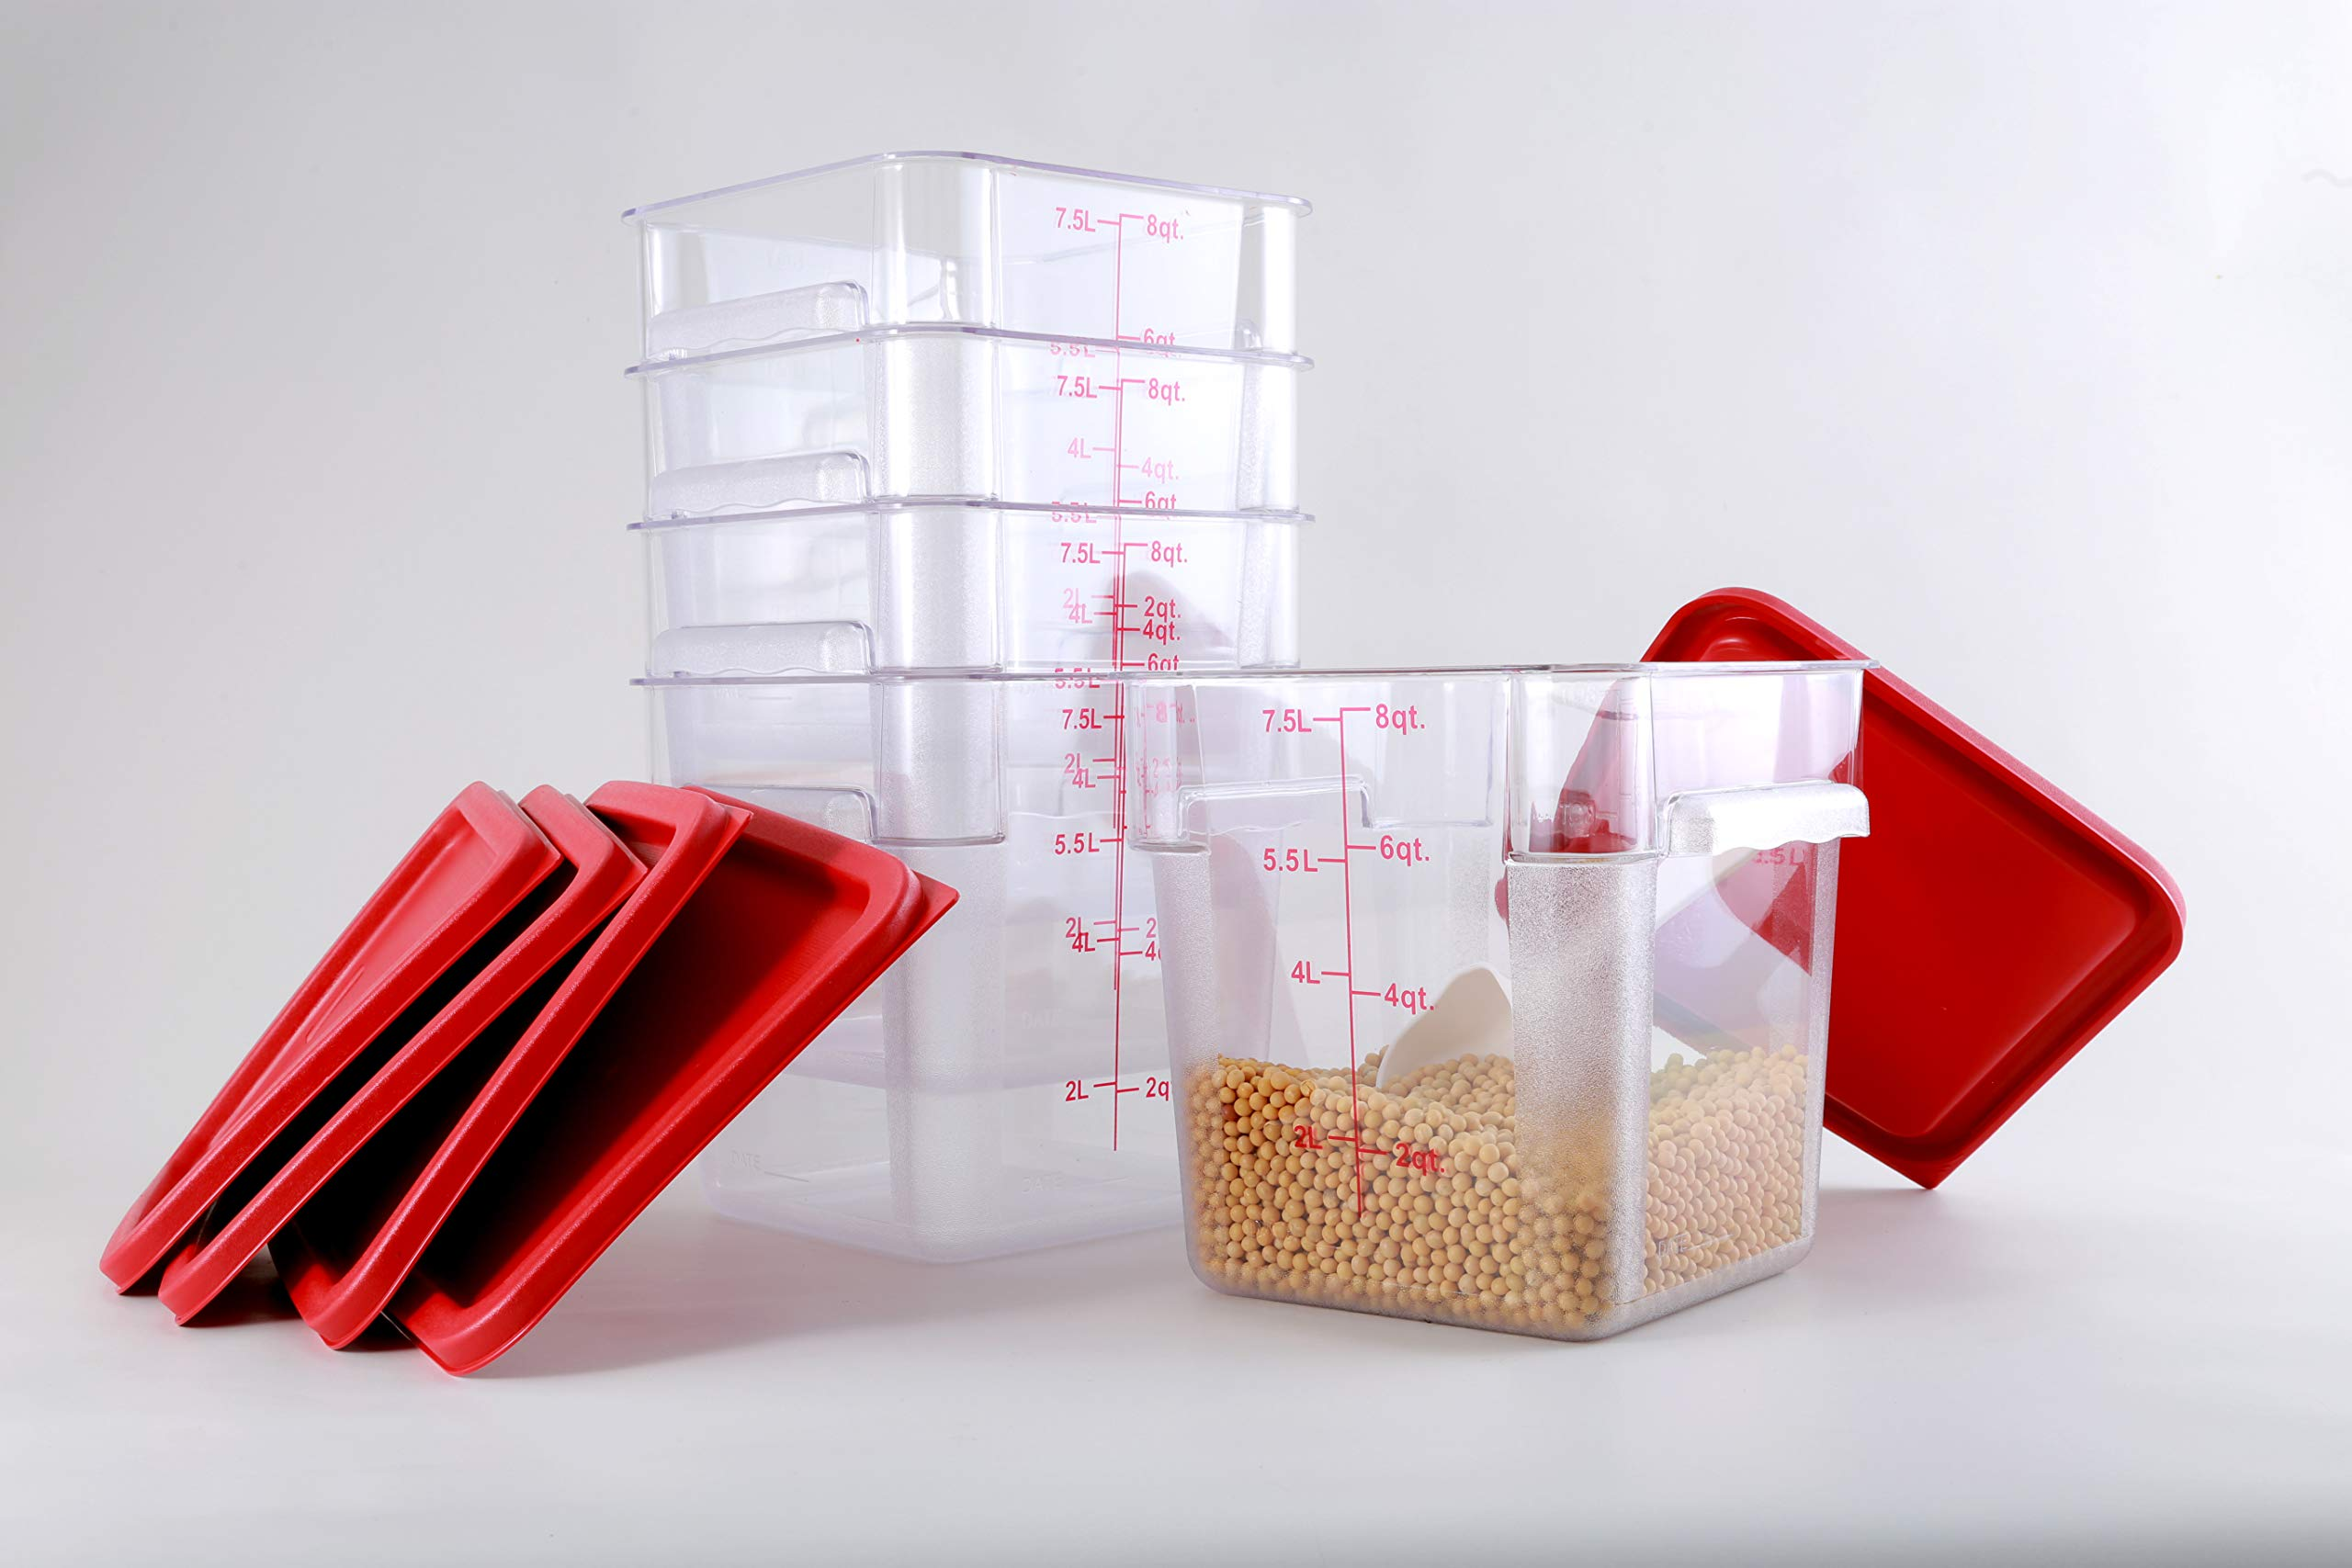 Hakka 8 Qt Commercial Grade Square Food Storage Containers with Lids,Polycarbonate,Clear - Case of 5